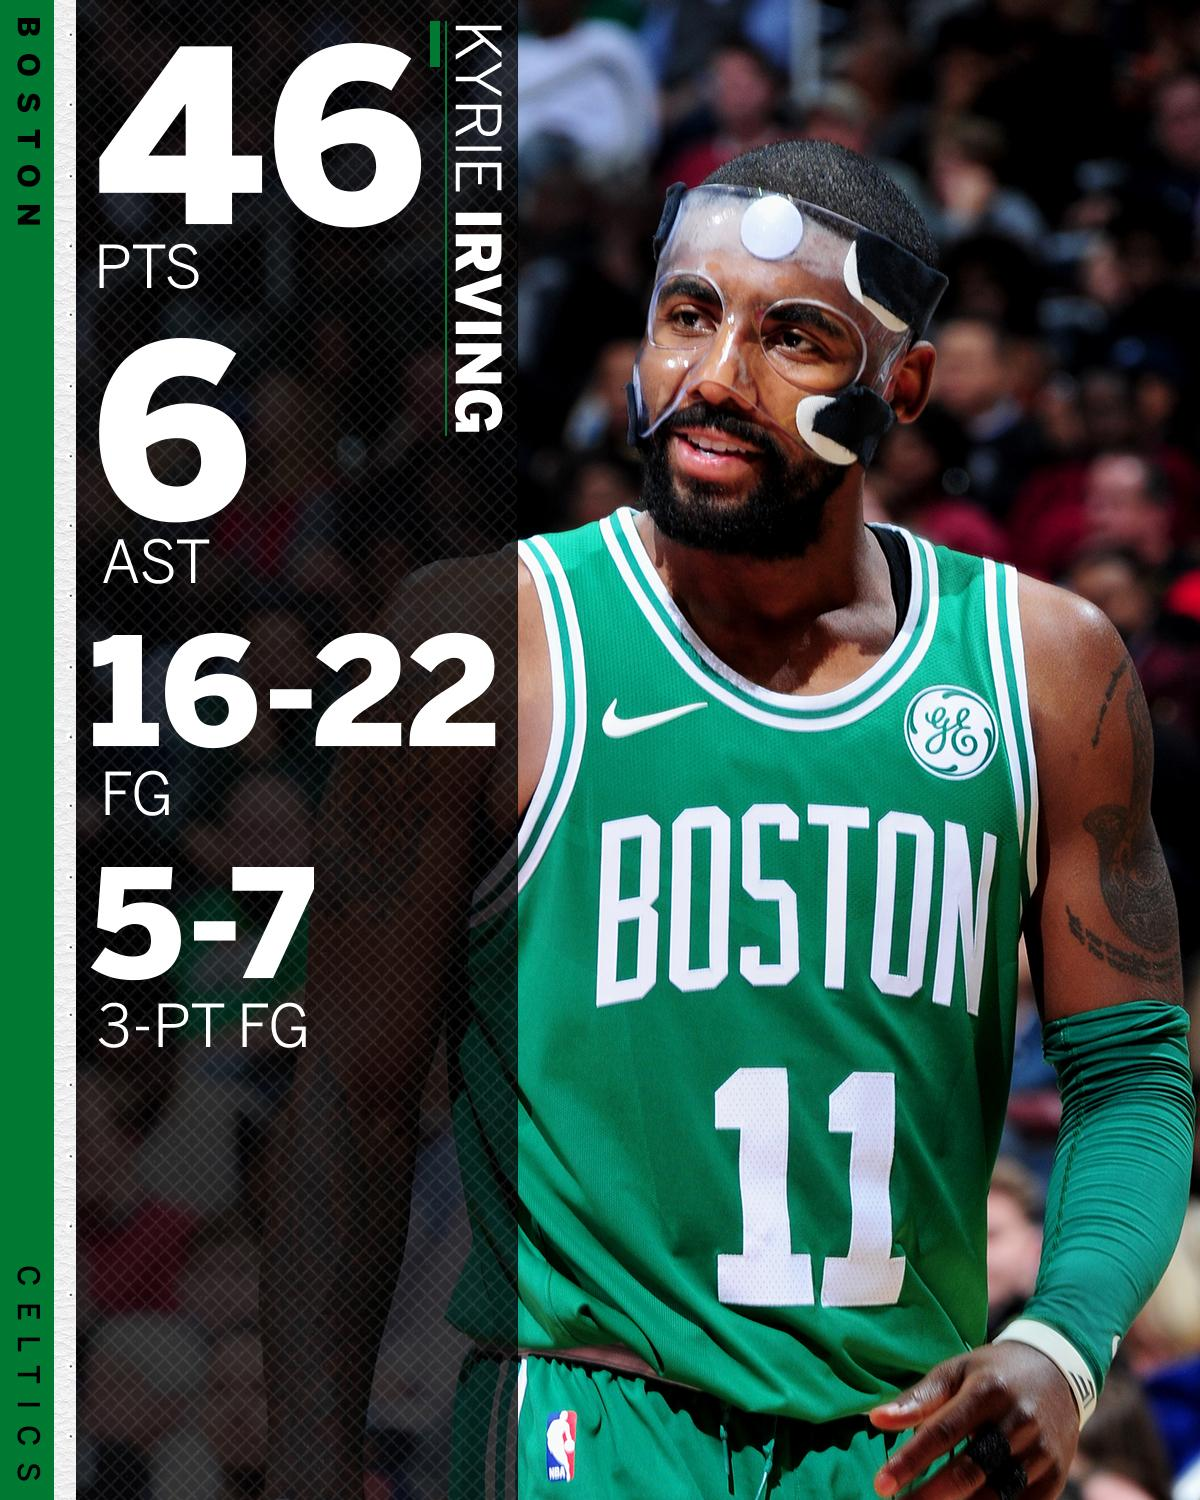 The Celtics needed all 46 to keep the streak alive. ☘️ https://t.co/LLJm2N4mVU